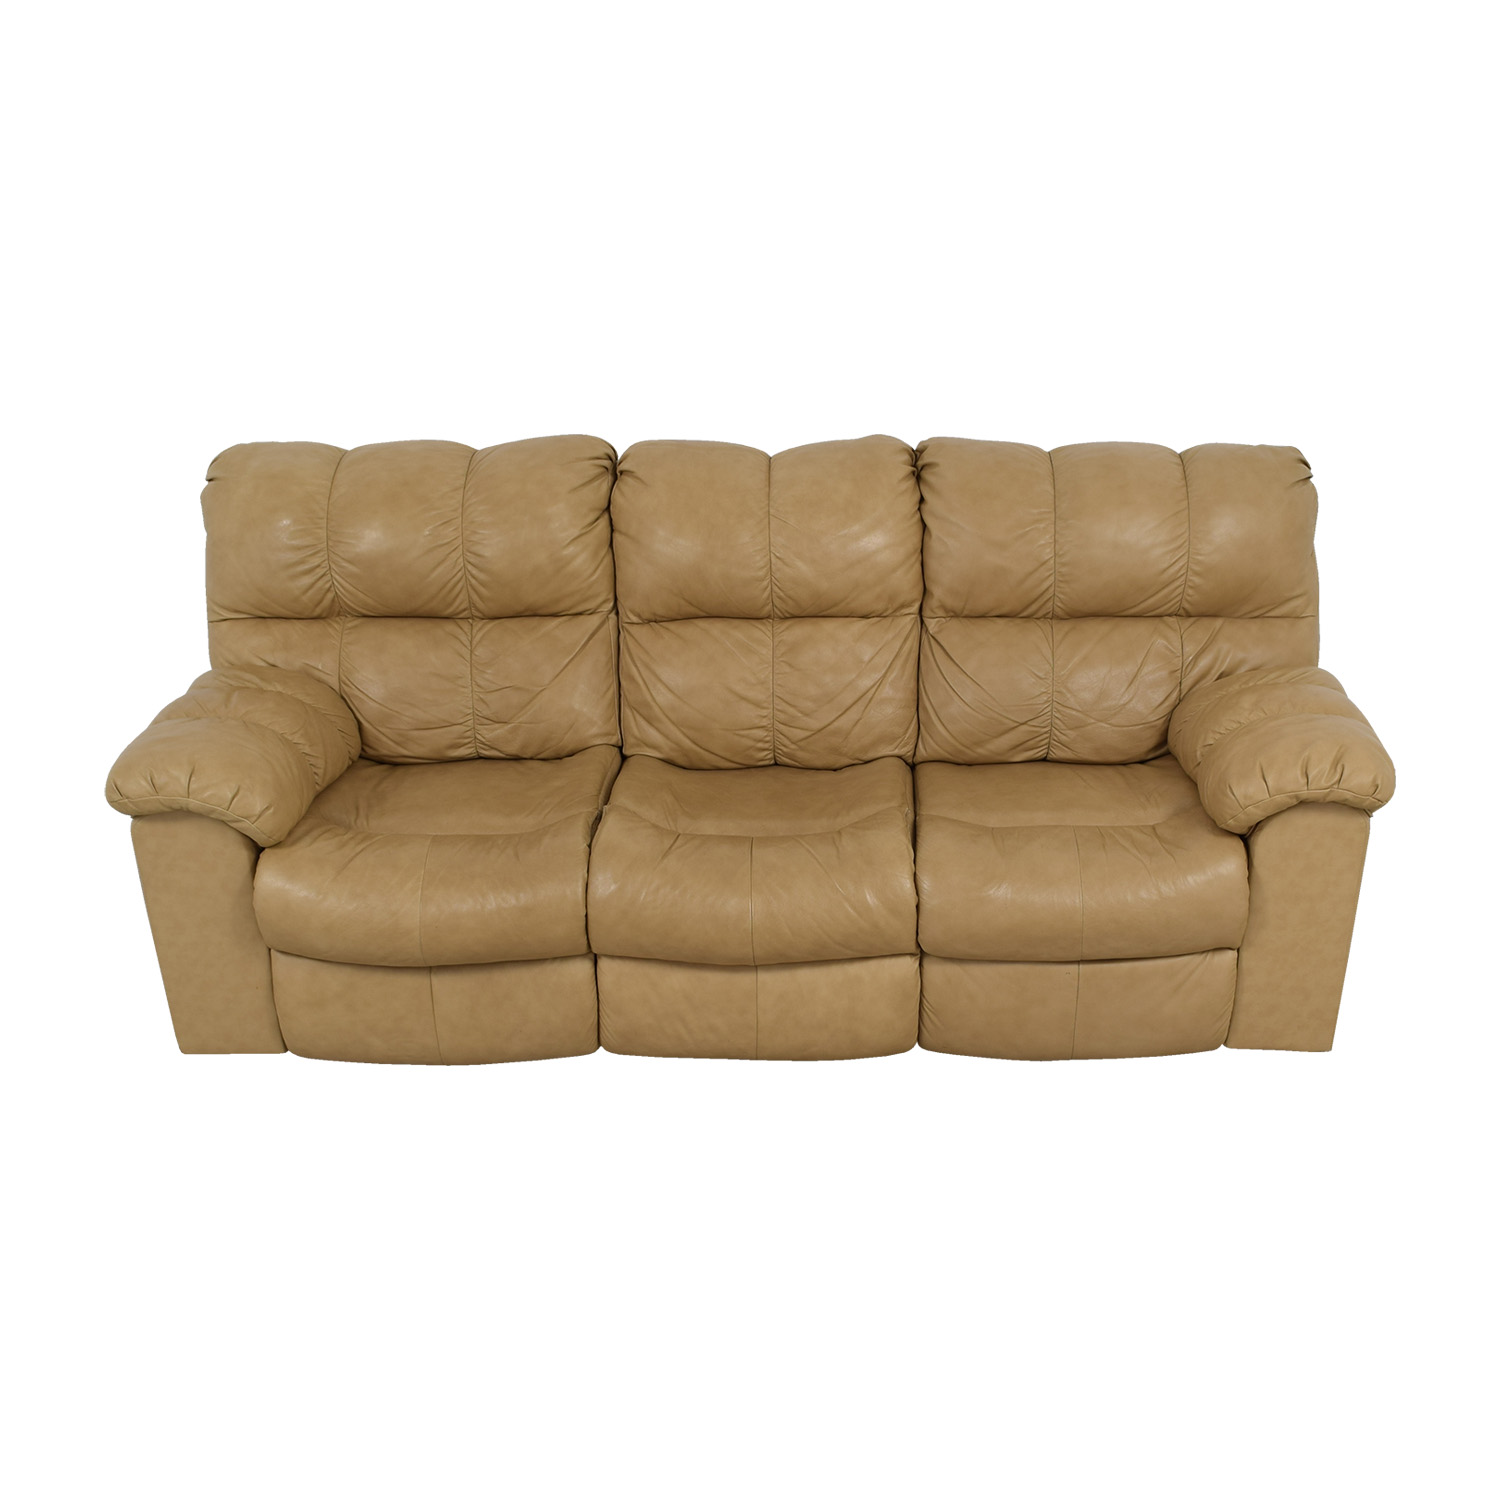 ashley furniture montgomery sofa sleeper under 500 signature sofas trend american 52 and